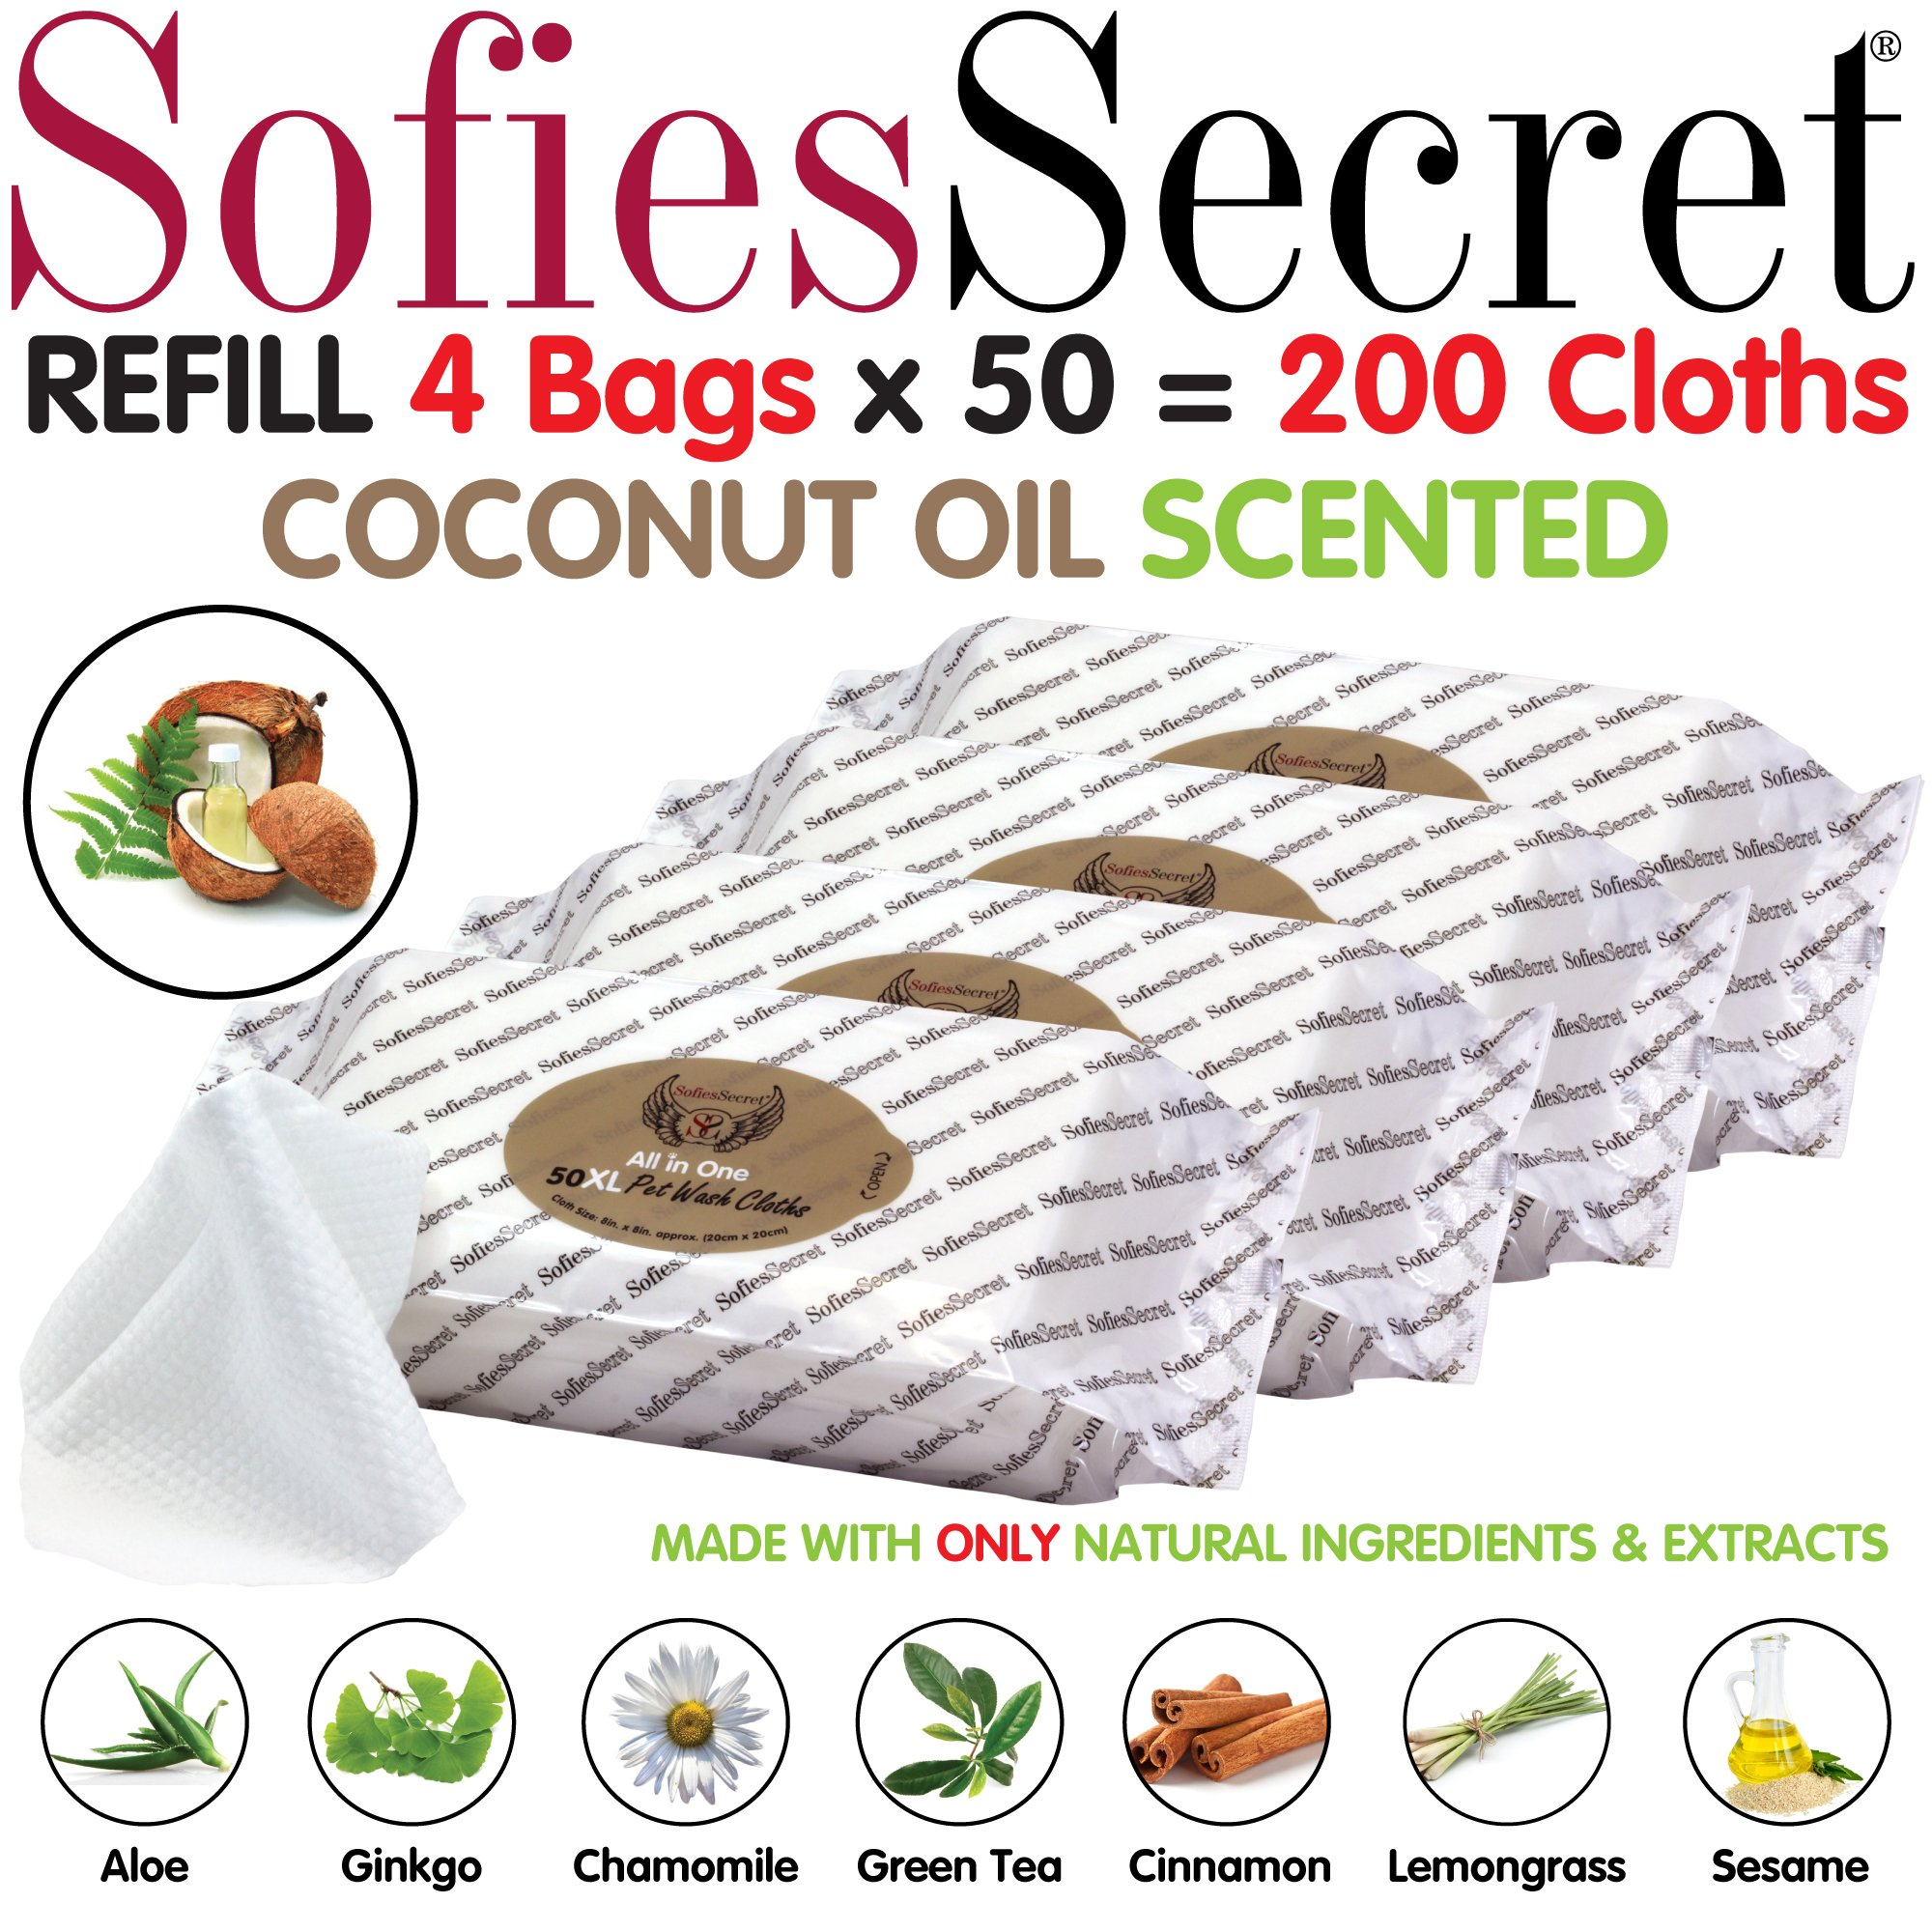 SofiesSecret XL PET Wipes, 200 REFILLS, COCONUT OIL, All in One Grooming, for Paws, Coat, Skin, Face, Ears and Teeth, Made with only Naturally derived Ingredients, Oils & Extra, Cruelty Free and Vegan by SofiesSecret